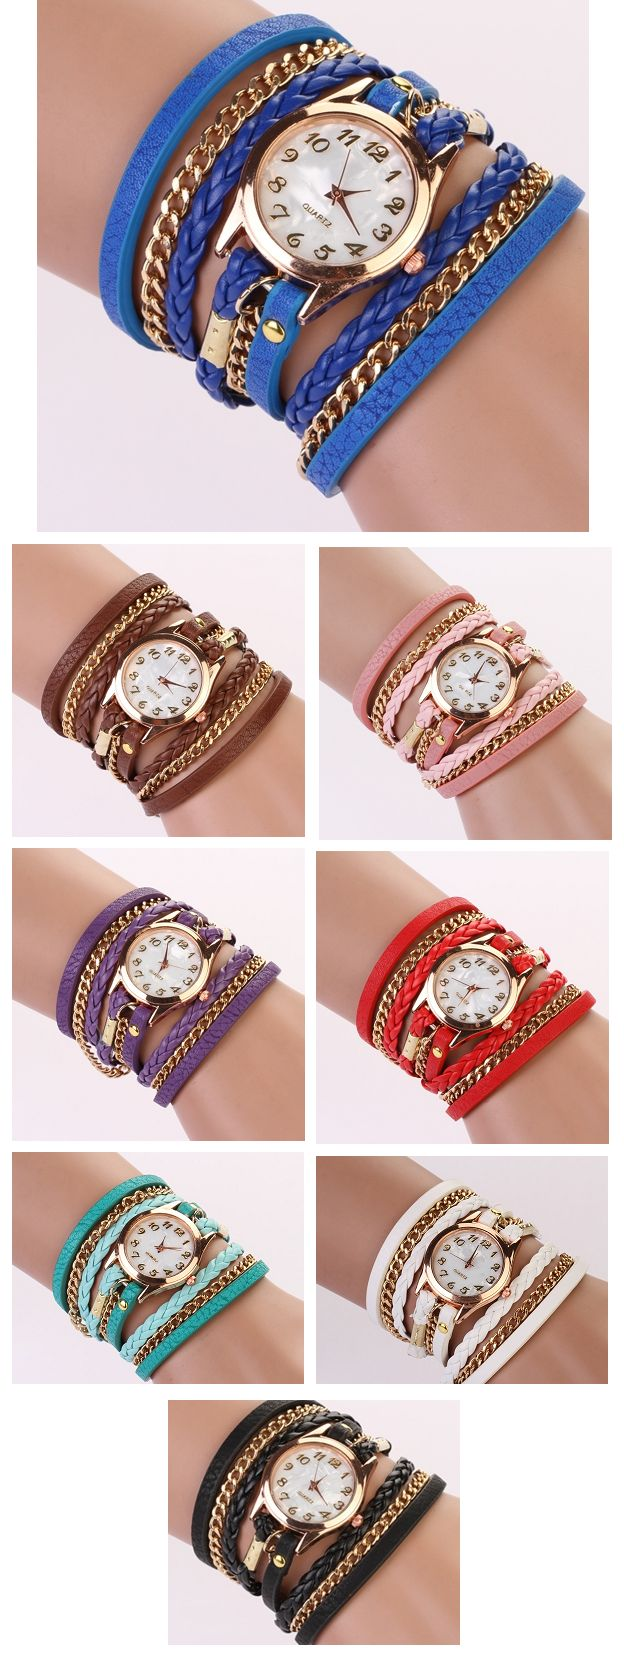 Watch Me Wrist Watch/Bracelet Set